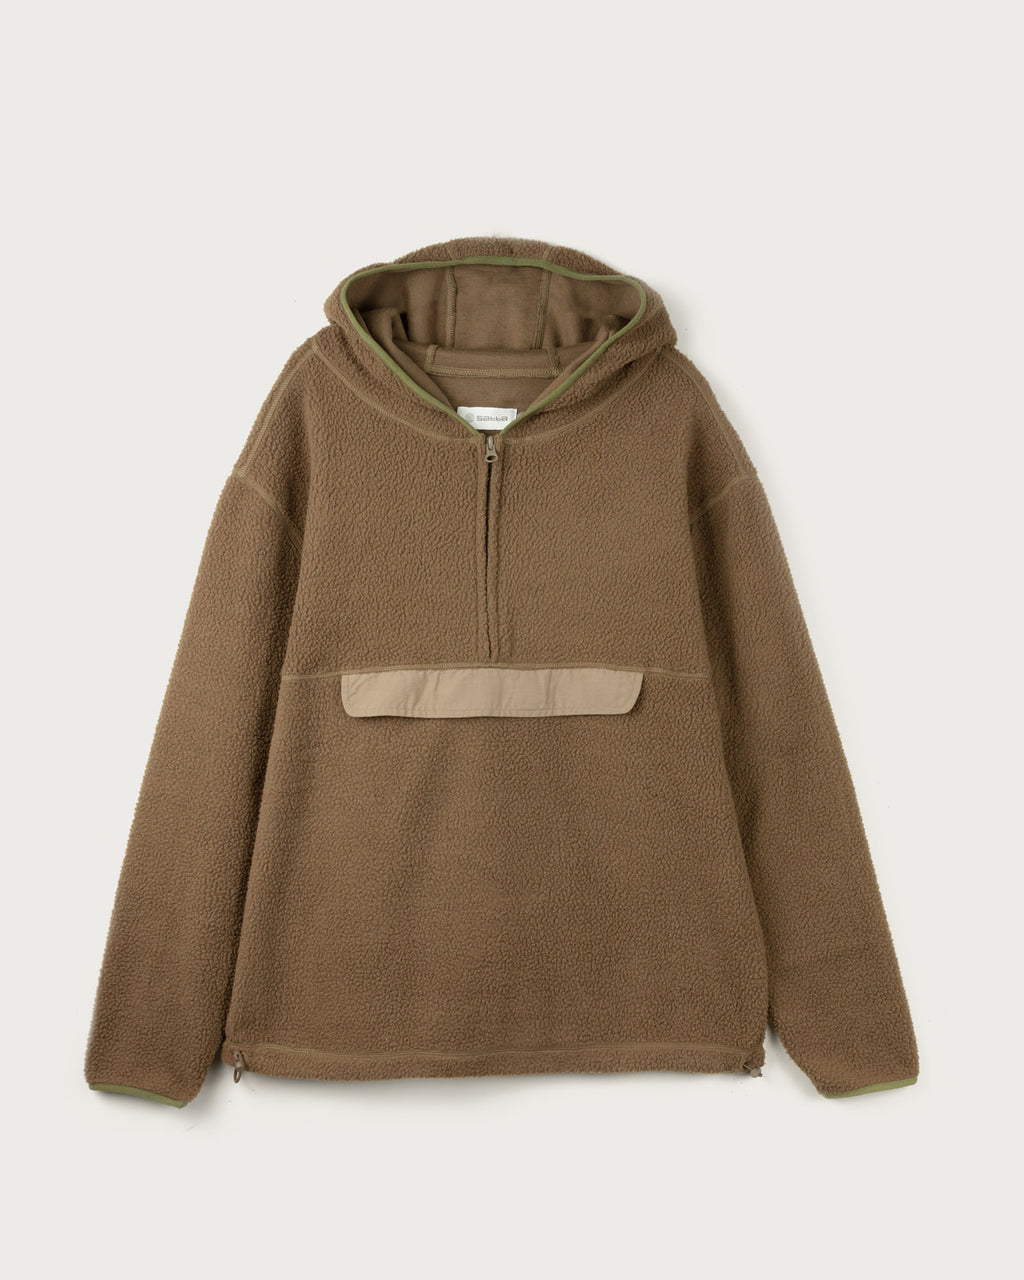 Satta Bushman Fleece - Forest Green | SATTA